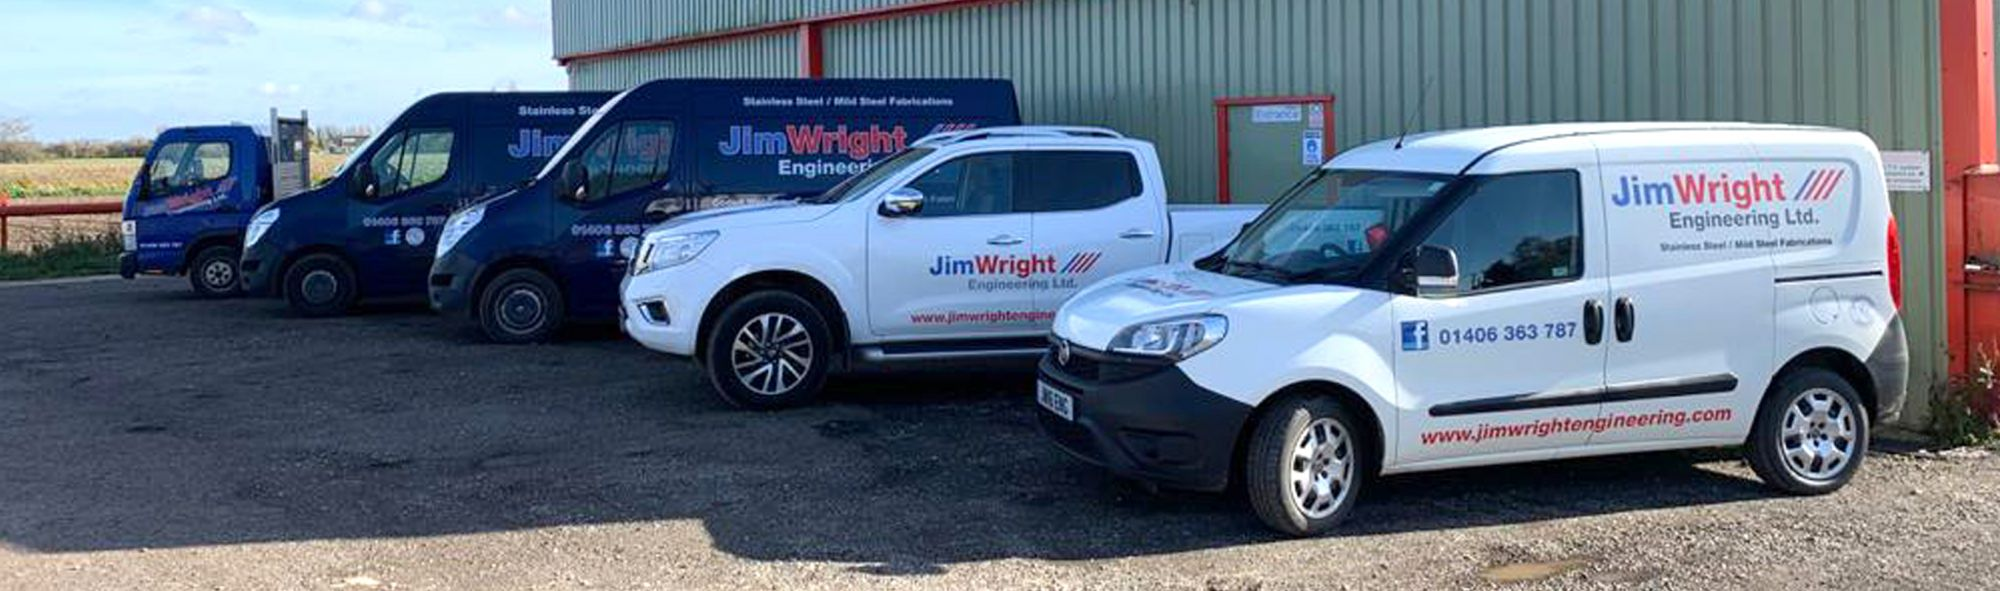 Jim Wright Engineering Vehicle Fleet